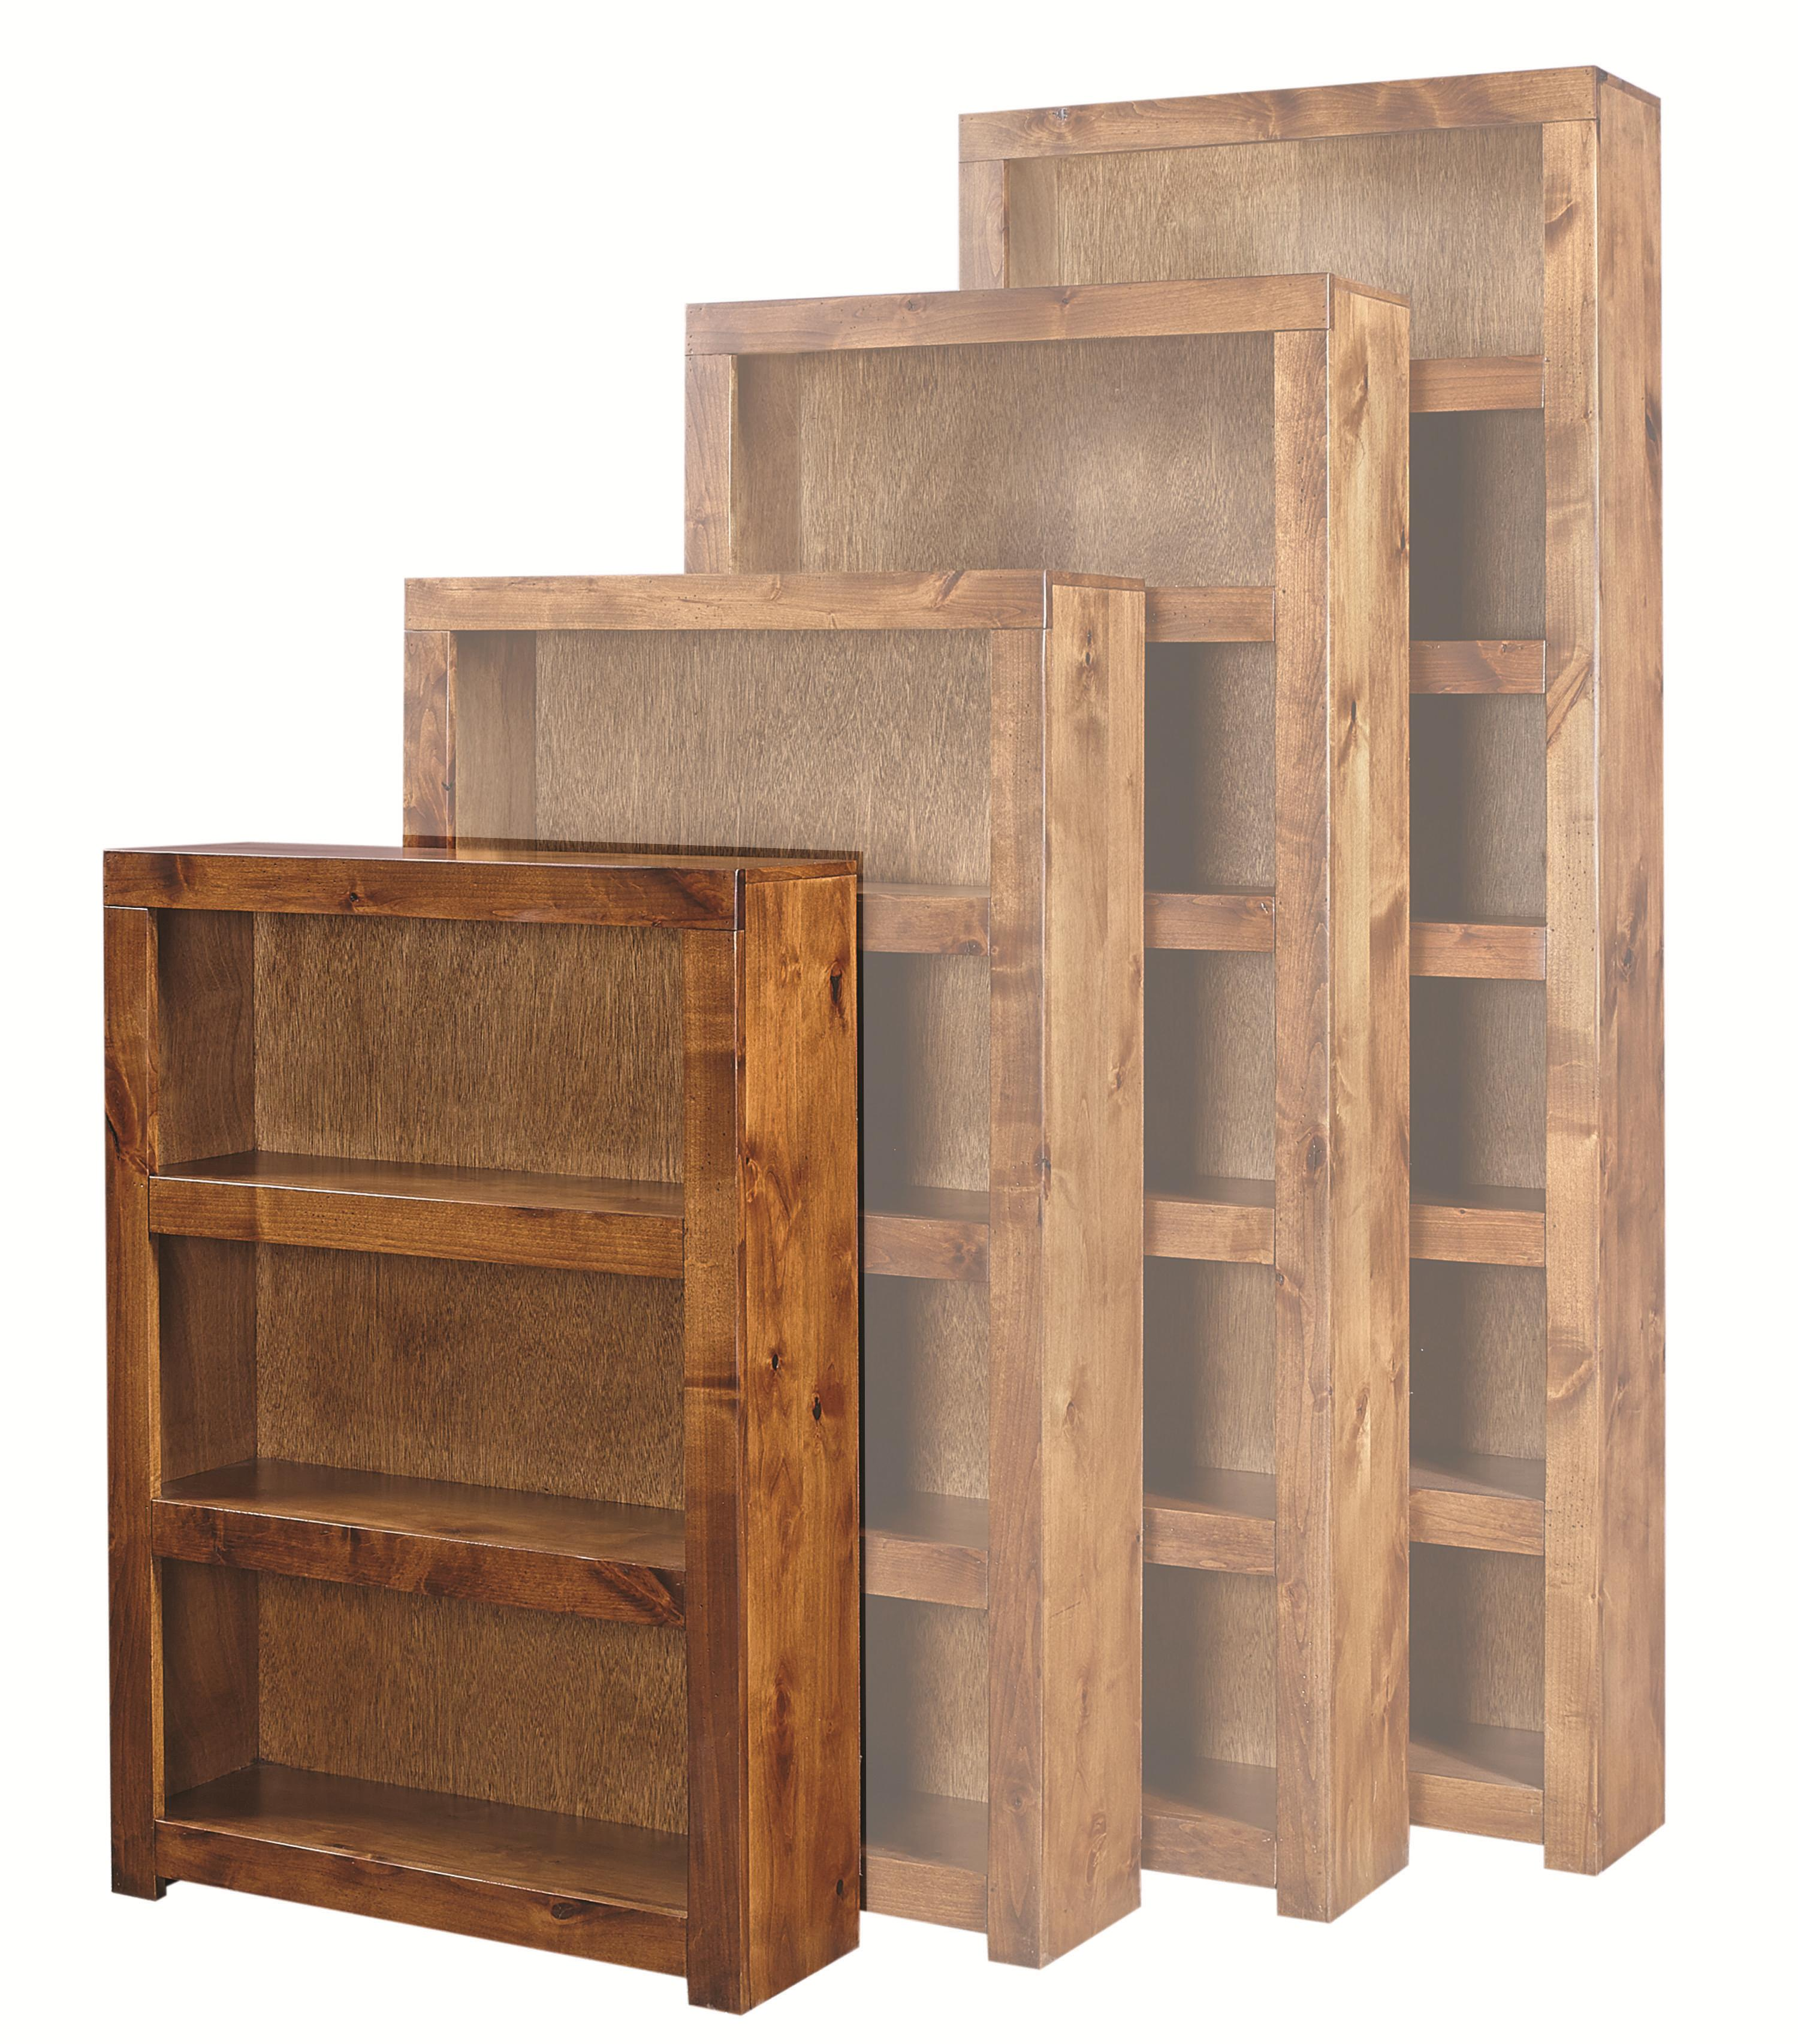 Aspenhome Contemporary Alder 48 Inch Bookcase - Item Number: DL3448-FRT